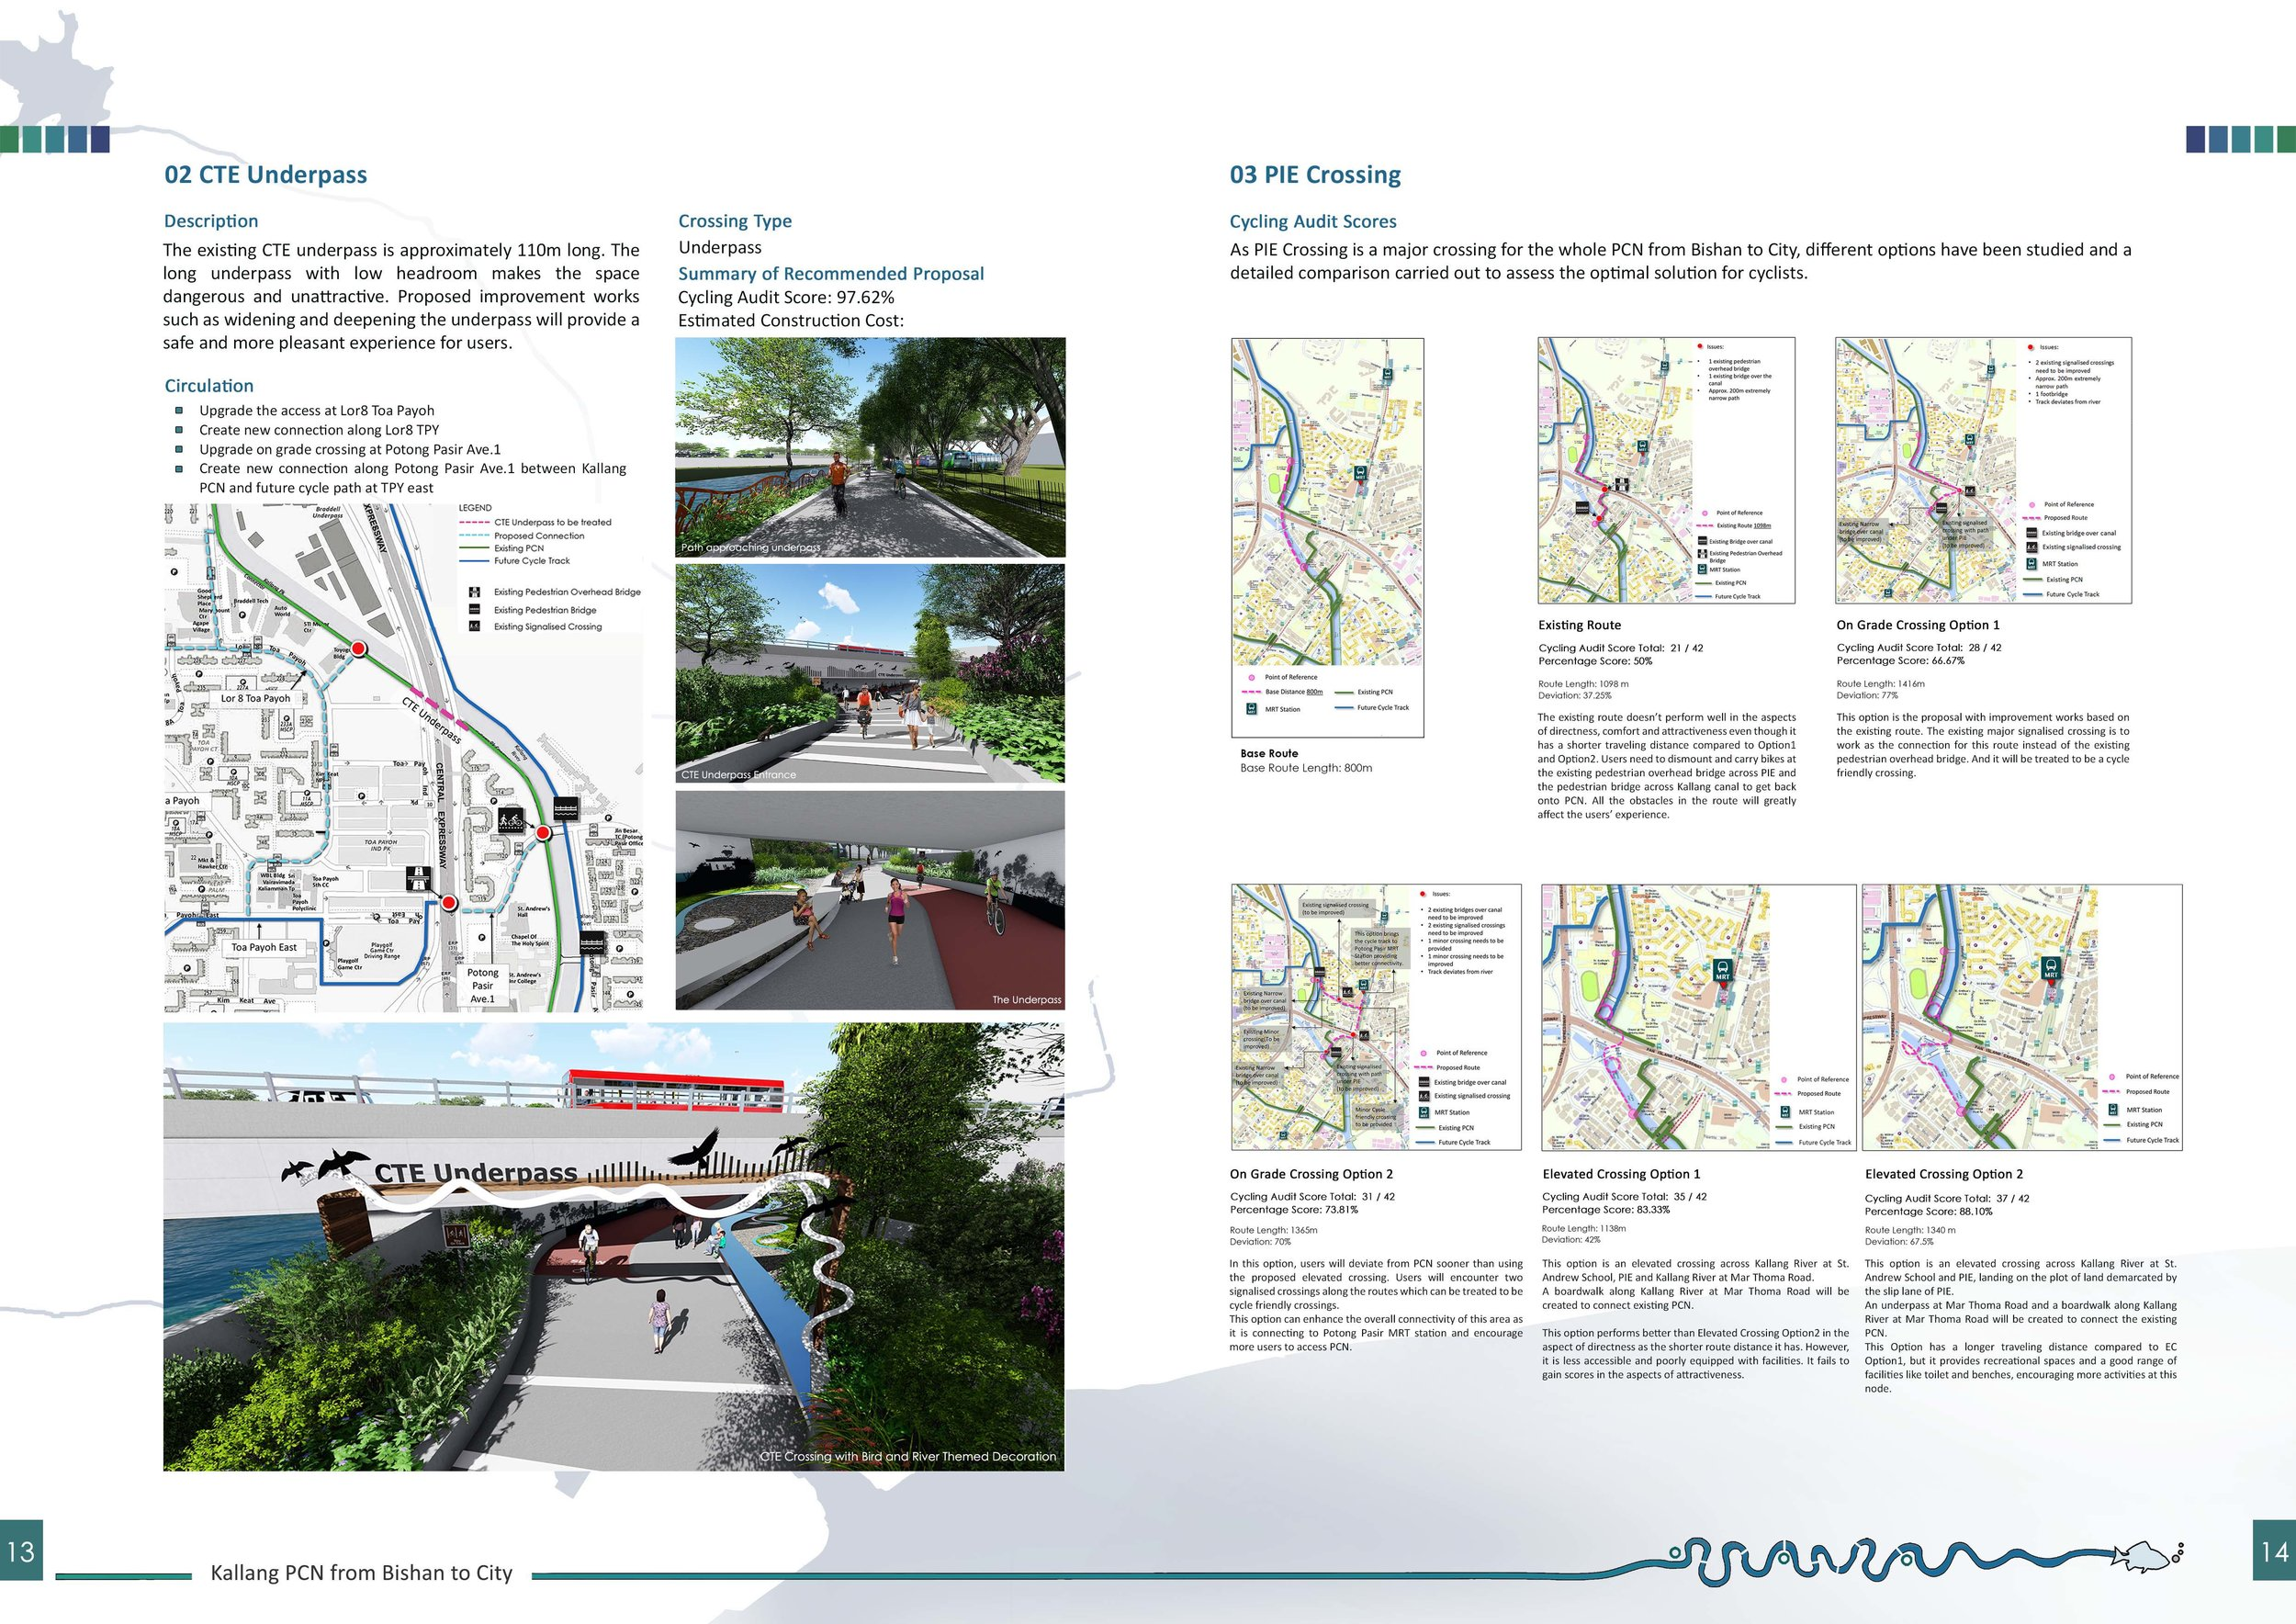 Feasibility Report page indicating Cycling Audit for Crossing/ Route Options